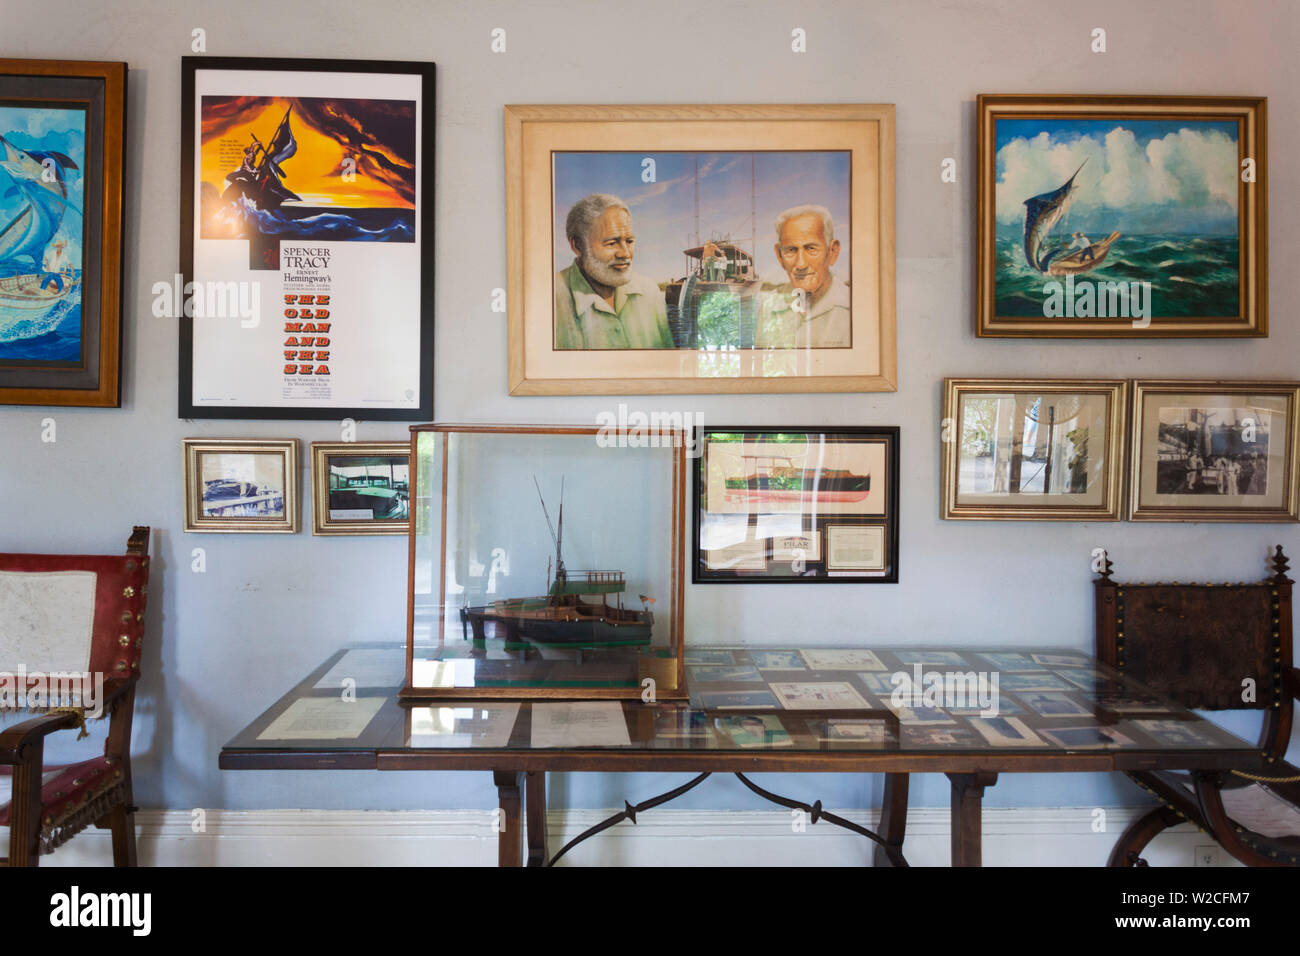 USA, Florida, Florida Keys, Key West, Hemingway House, former residence of famous American writer Stock Photo